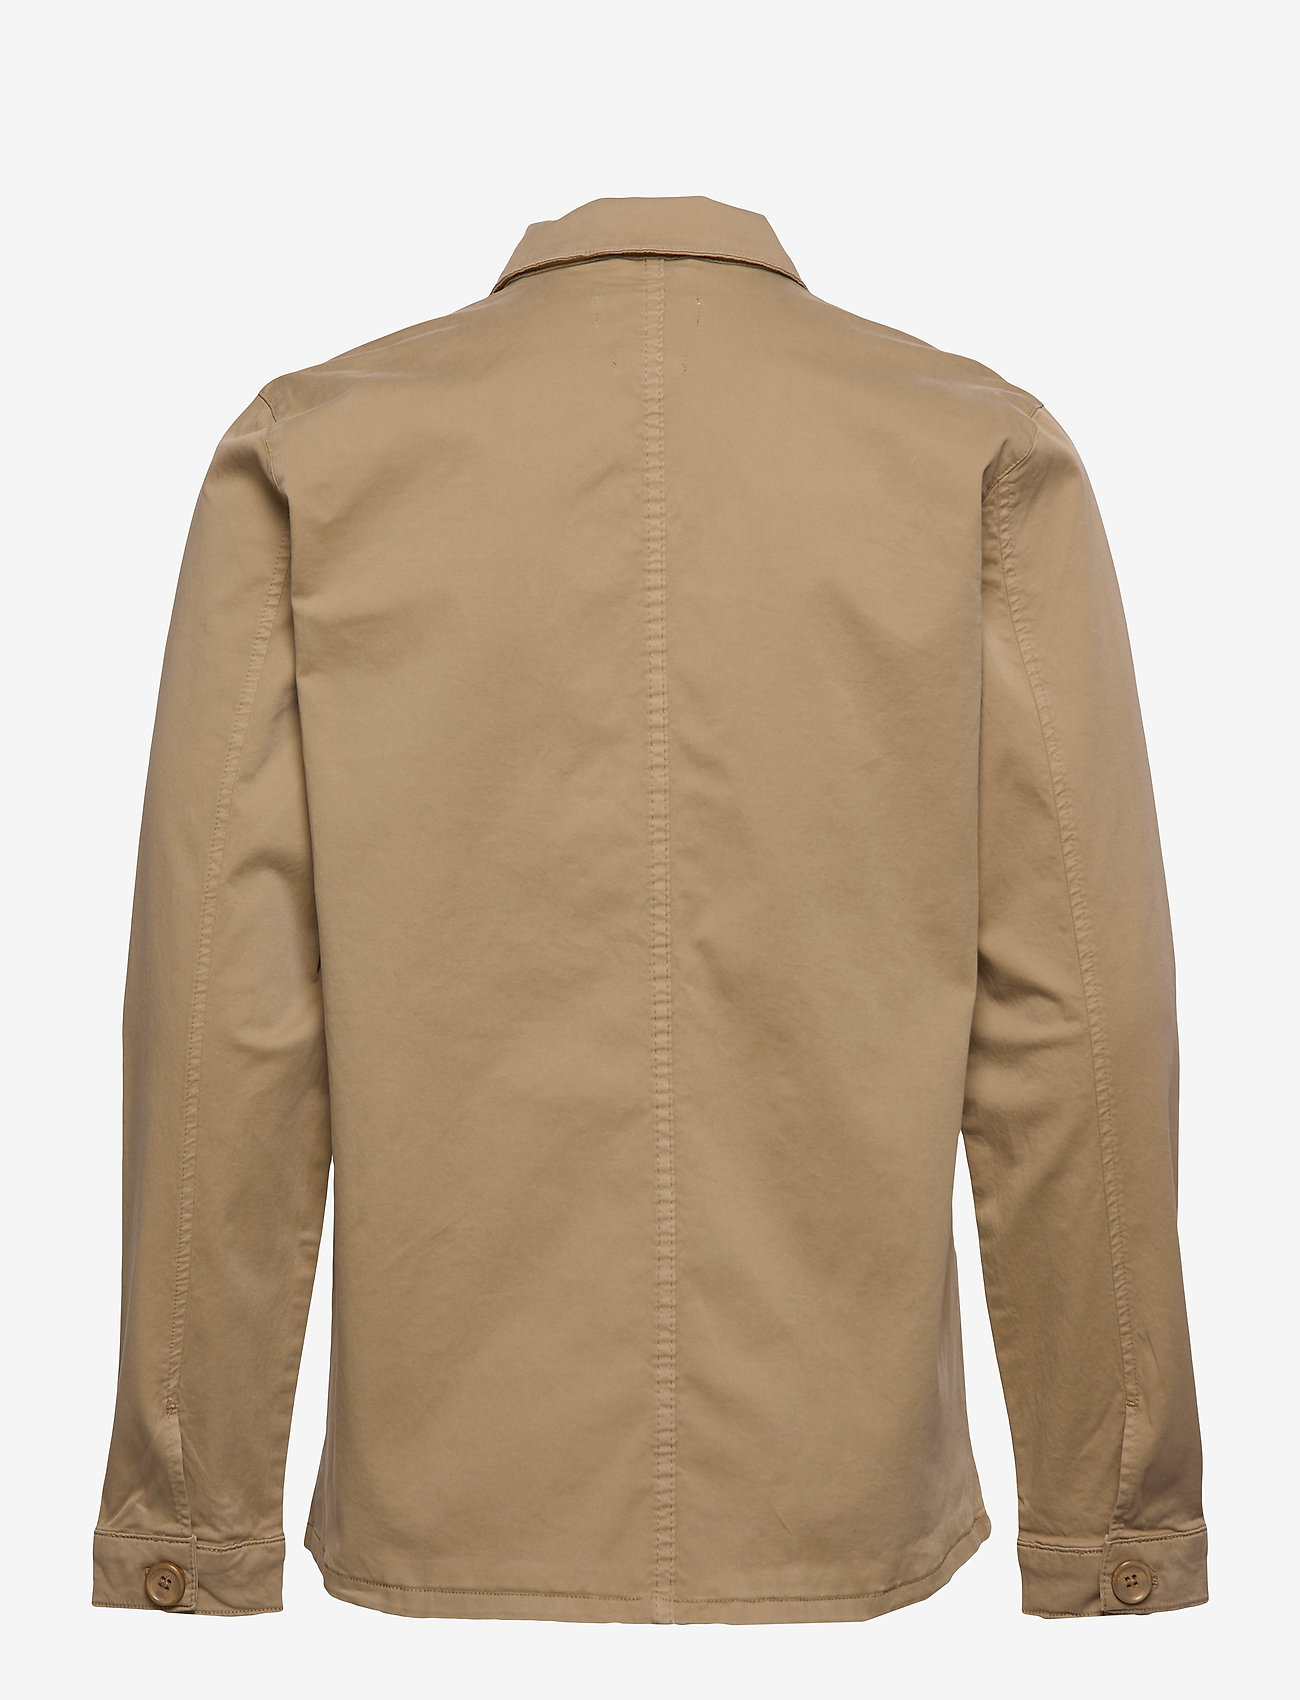 By Garment Makers - The Organic Workwear Jacket - podstawowe koszulki - khaki - 1